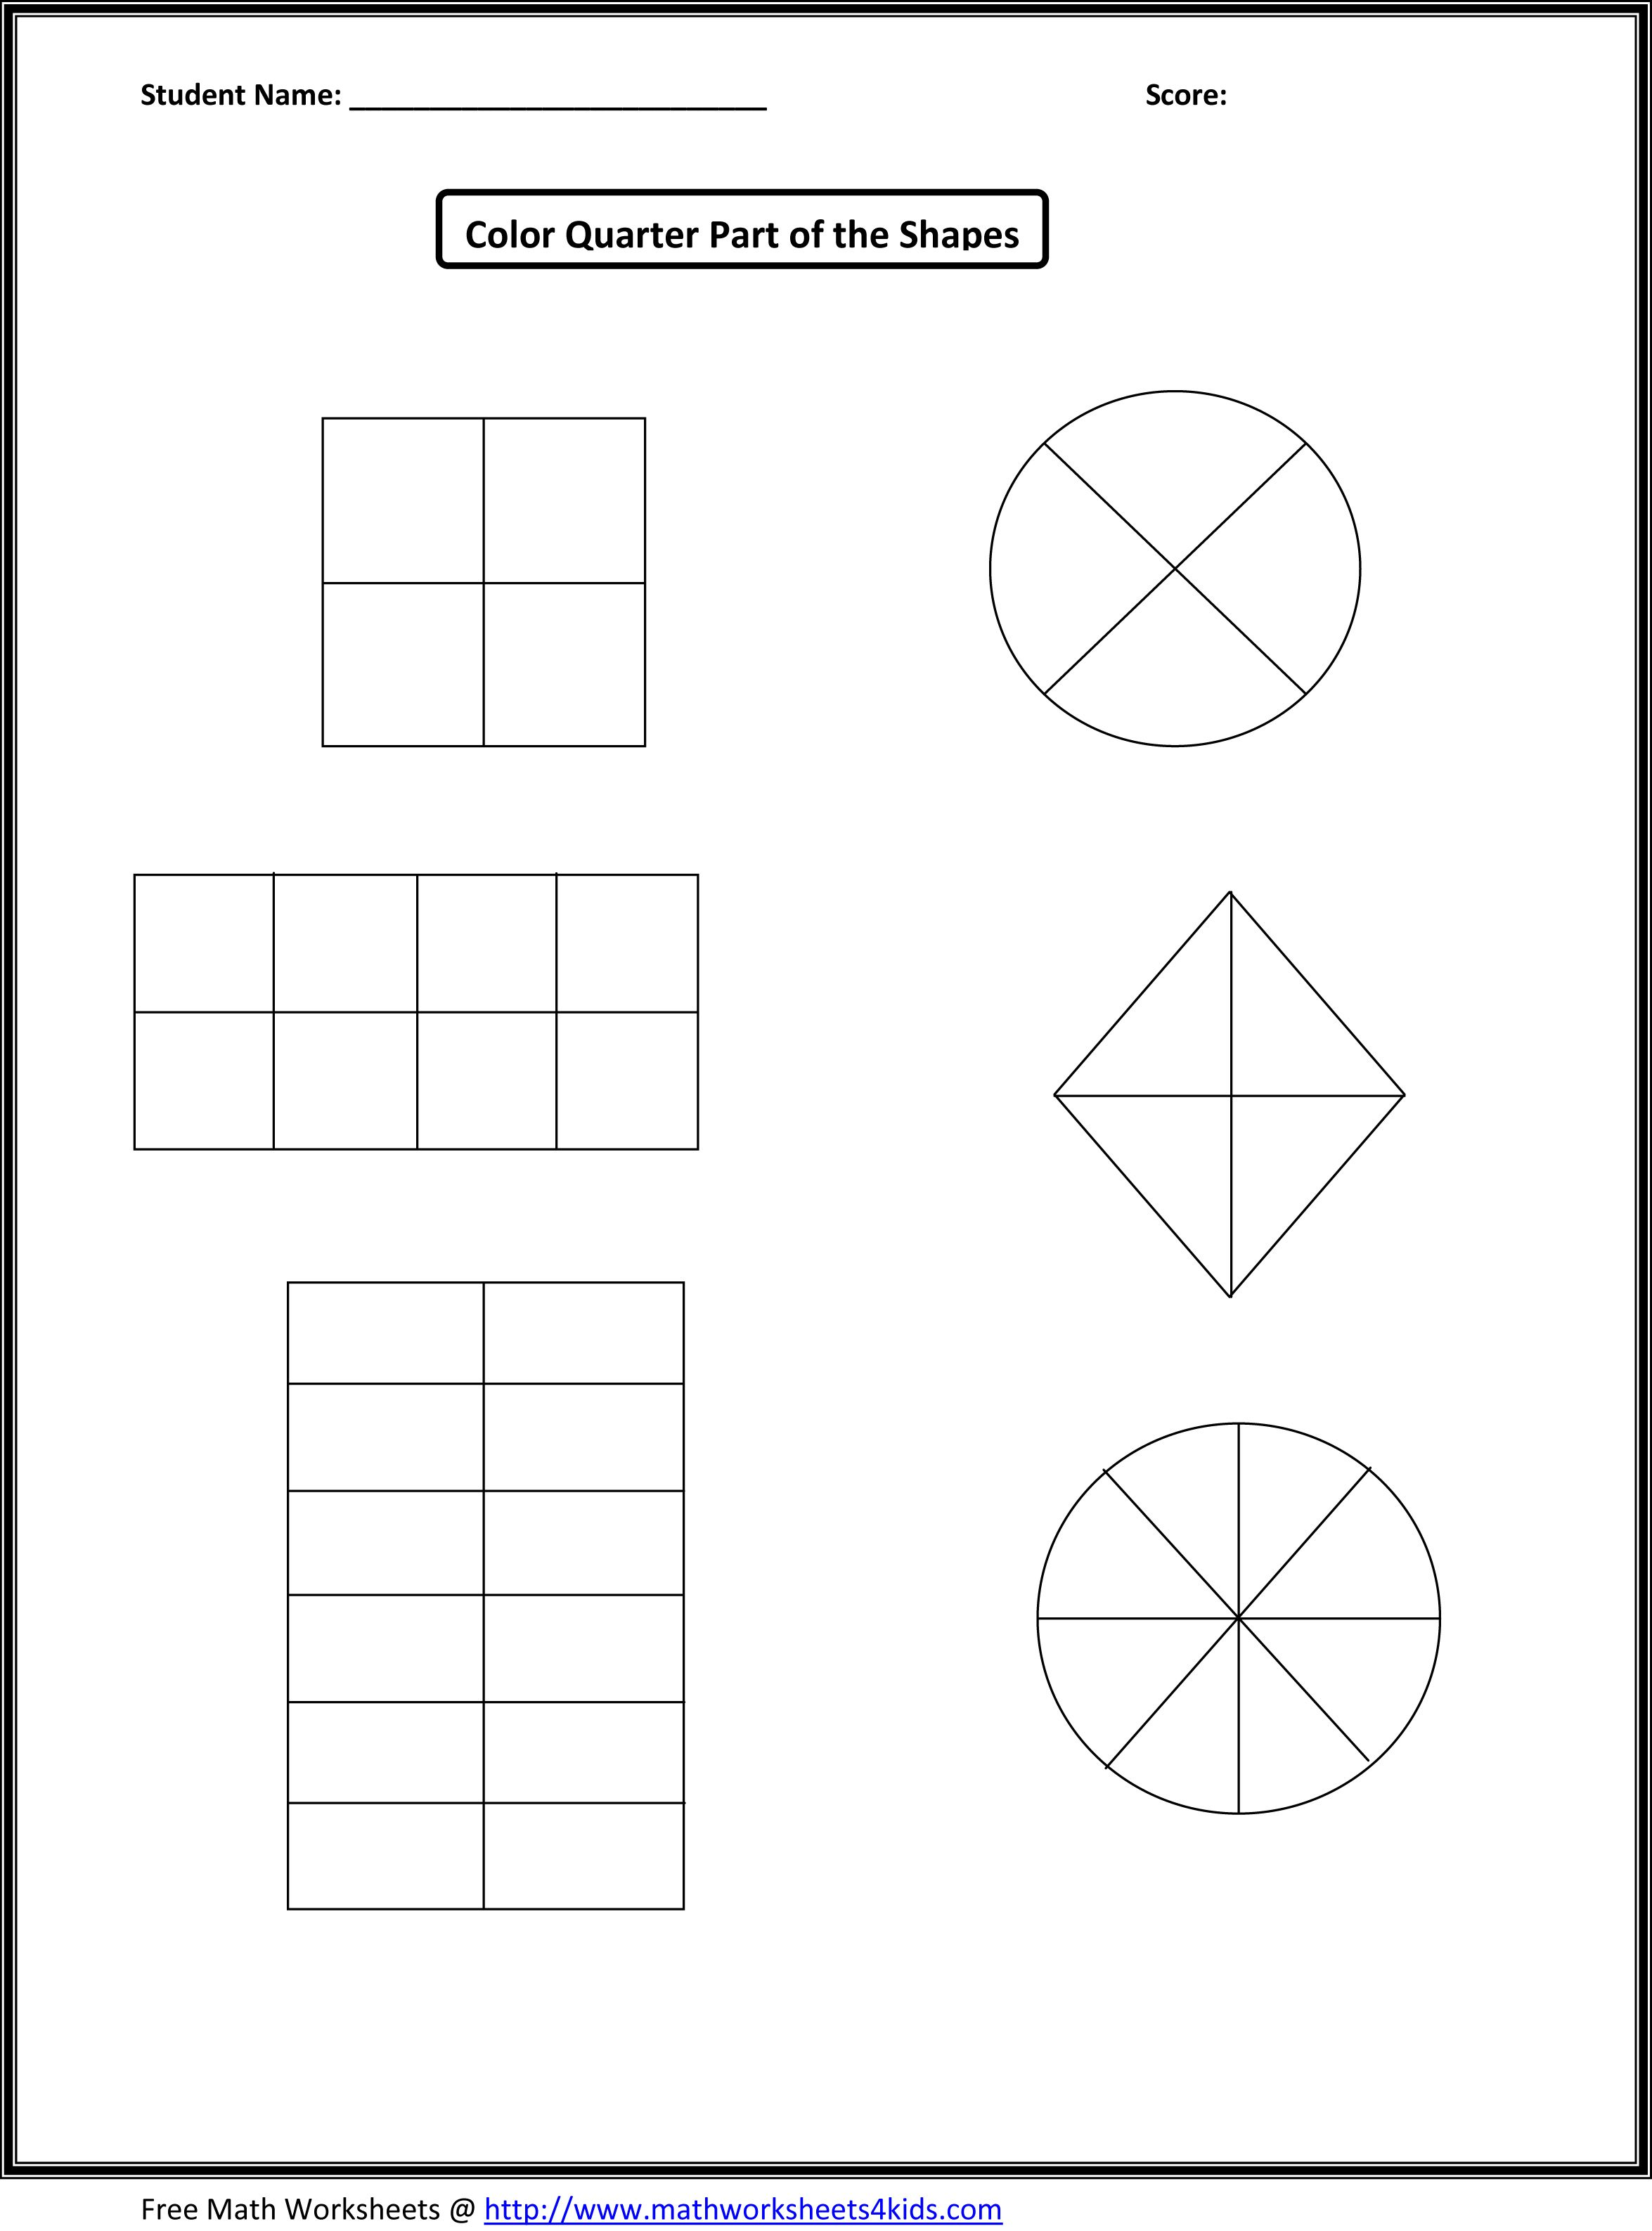 Worksheets Fraction Worksheets For 1st Grade this would work for first grade fraction number sense assessment math worksheets